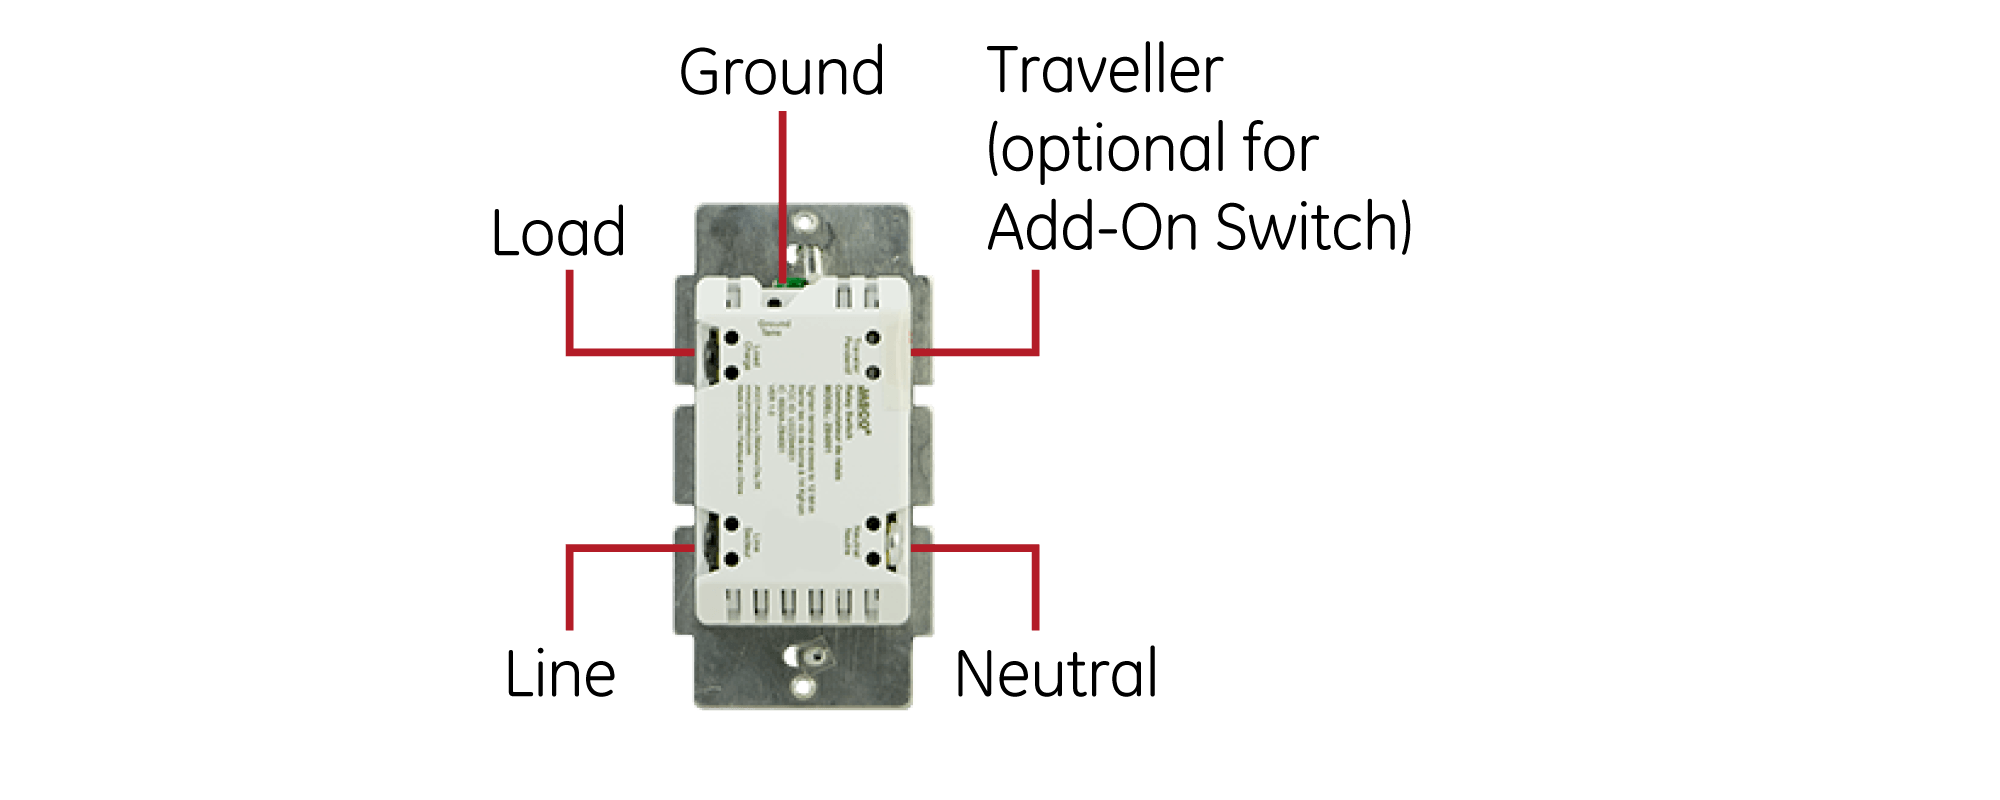 wiring diagram for home automation elevator schematic jasco zigbee in wall smart dimmer switch